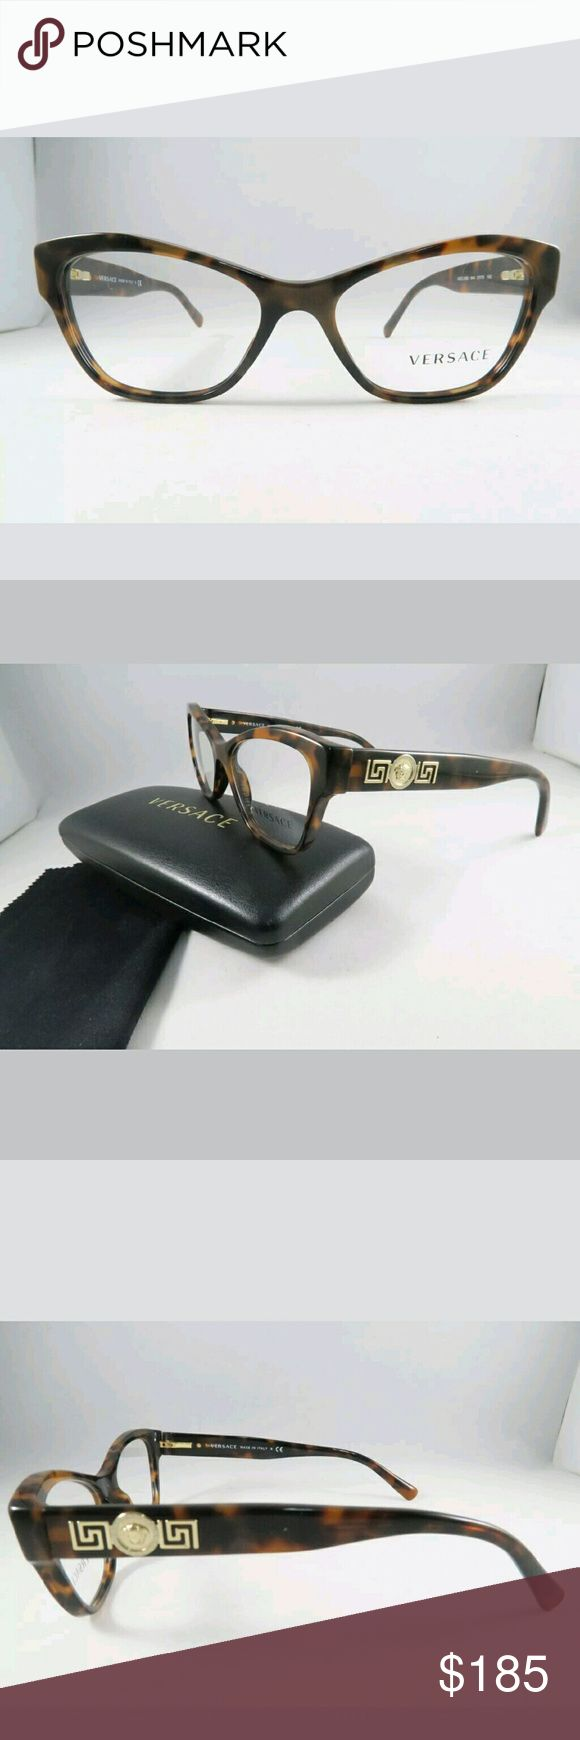 Versace Eyeglasses New and authentic  Versace Eyeglasses  Brown frame  53-16-140 Includes original case Versace  Accessories Glasses